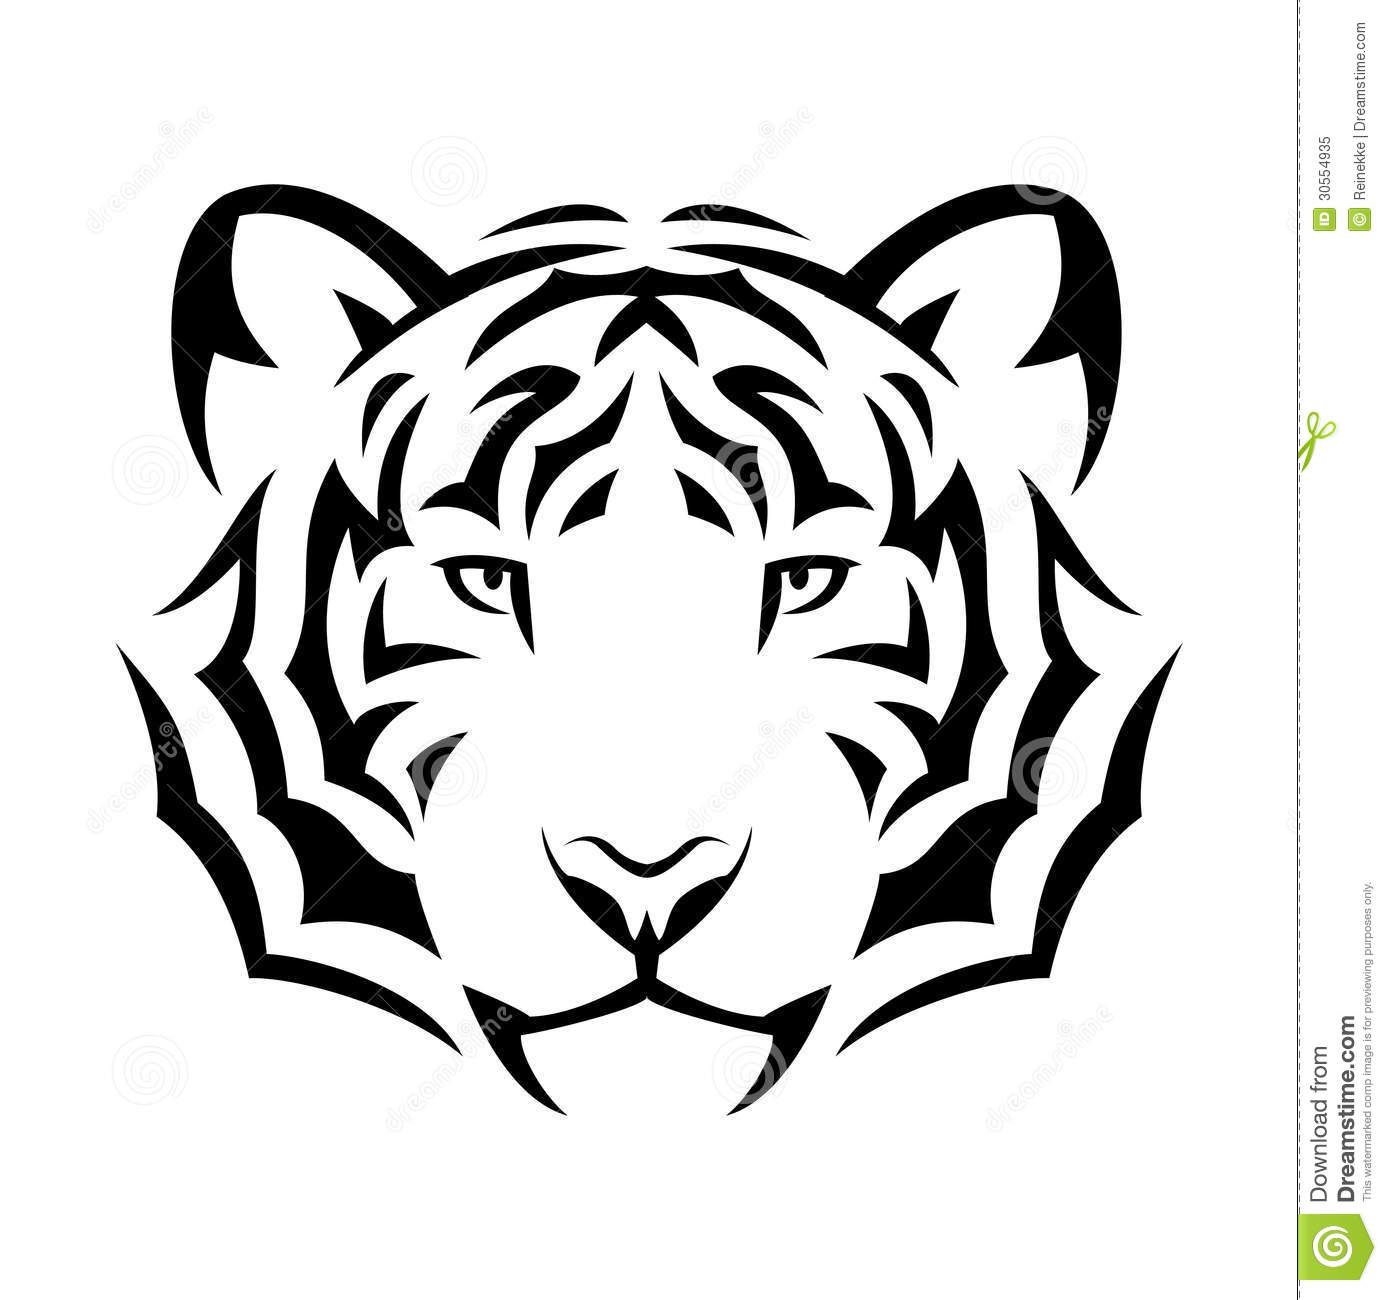 Tribal tiger tattoo design illustration. Black isolated on white.: www.dreamstime.com/royalty-free-stock-photo-tiger-tattoo-tribal...